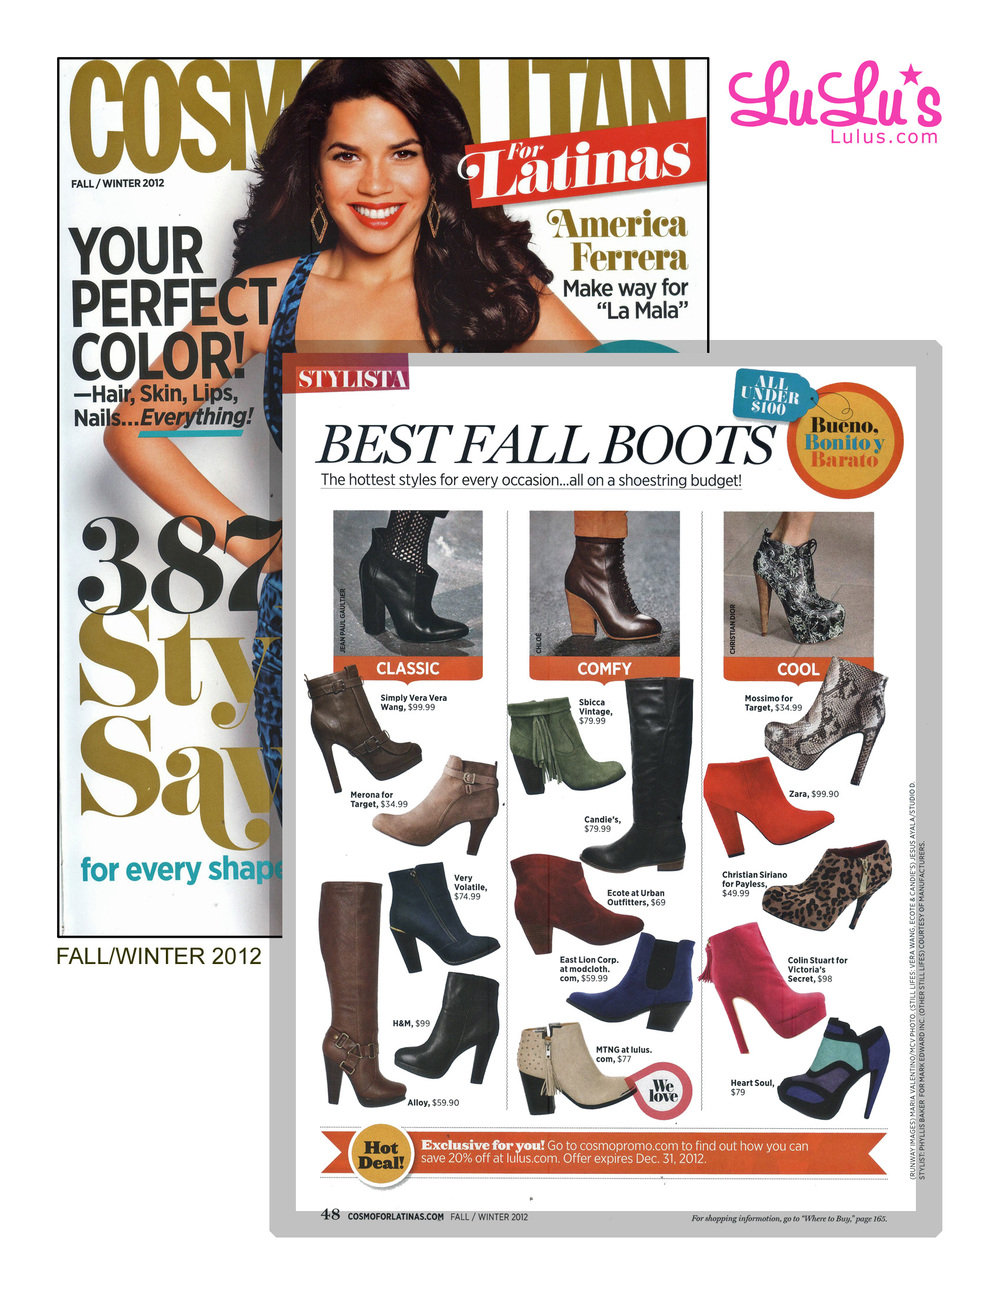 CosmoForLatinas_Fall-Winter2012_MTNGBootEdit.jpg